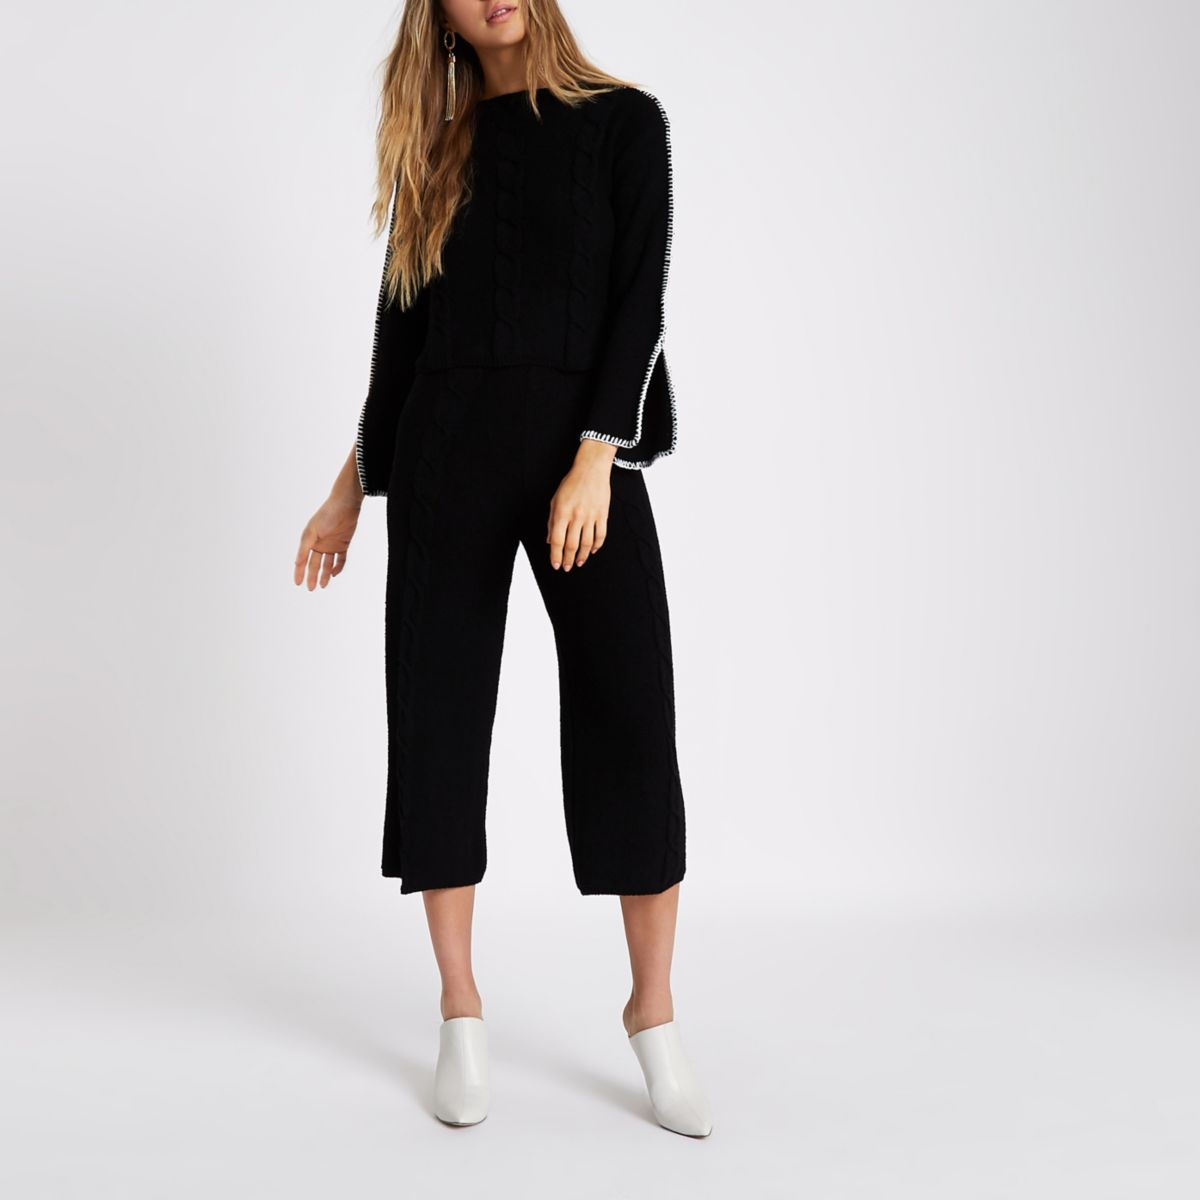 Black cable knit culottes